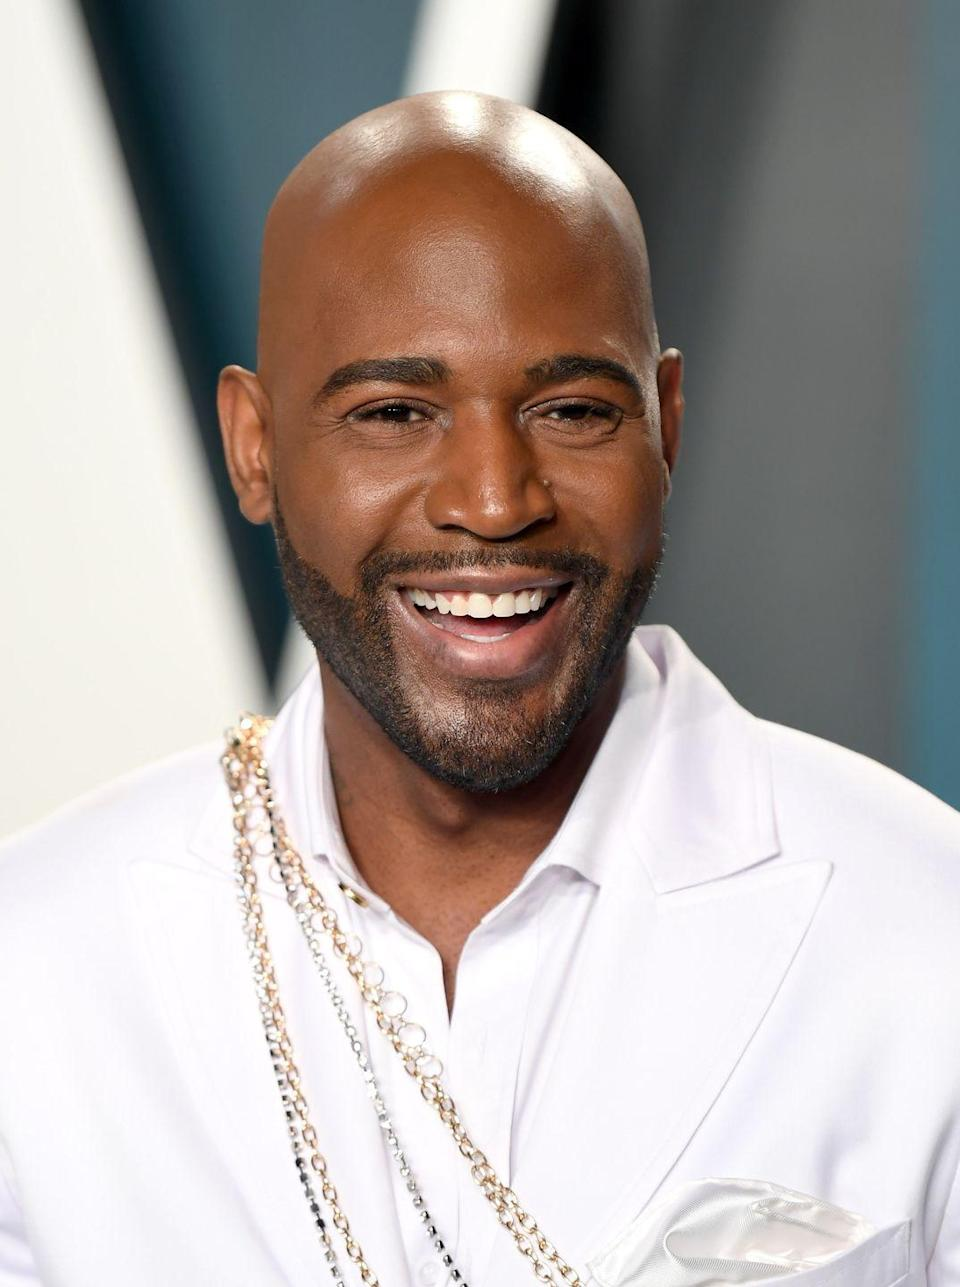 """<p>After his season ended, Brown appeared in <a href=""""https://www.imdb.com/name/nm1753363/"""" rel=""""nofollow noopener"""" target=""""_blank"""" data-ylk=""""slk:MTV's spin-off show, The Challenge"""" class=""""link rapid-noclick-resp"""">MTV's spin-off show, <em>The Challenge</em></a>. He didn't return to TV until 2012, when he began appearing on talk shows <a href=""""https://www.imdb.com/name/nm1753363/"""" rel=""""nofollow noopener"""" target=""""_blank"""" data-ylk=""""slk:as a correspondent"""" class=""""link rapid-noclick-resp"""">as a correspondent</a>. In 2018, his career exploded when he was cast in <a href=""""https://www.imdb.com/name/nm1753363/"""" rel=""""nofollow noopener"""" target=""""_blank"""" data-ylk=""""slk:Netflix's Queer Eye"""" class=""""link rapid-noclick-resp"""">Netflix's <em>Queer Eye</em></a> as the culture expert. That same year, he got engaged to his longterm boyfriend, Ian Jordan. Following his newfound success, he released a memoir and a podcast. </p>"""